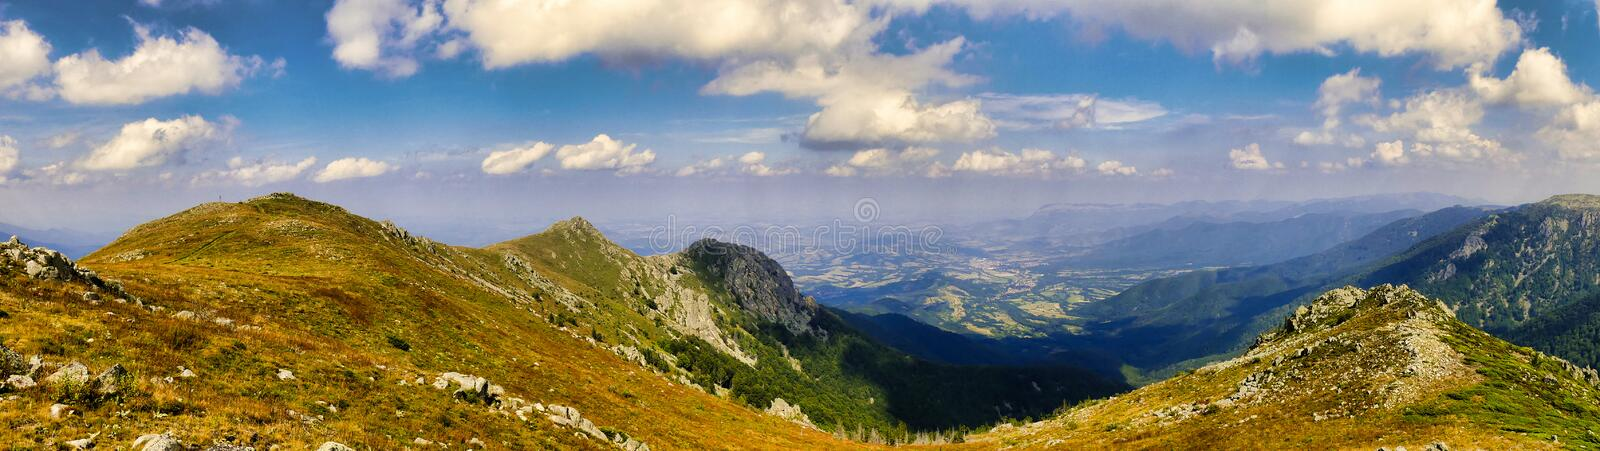 Rocky Mountain Peaks under Blue Sky with White Clouds panoramic stock image